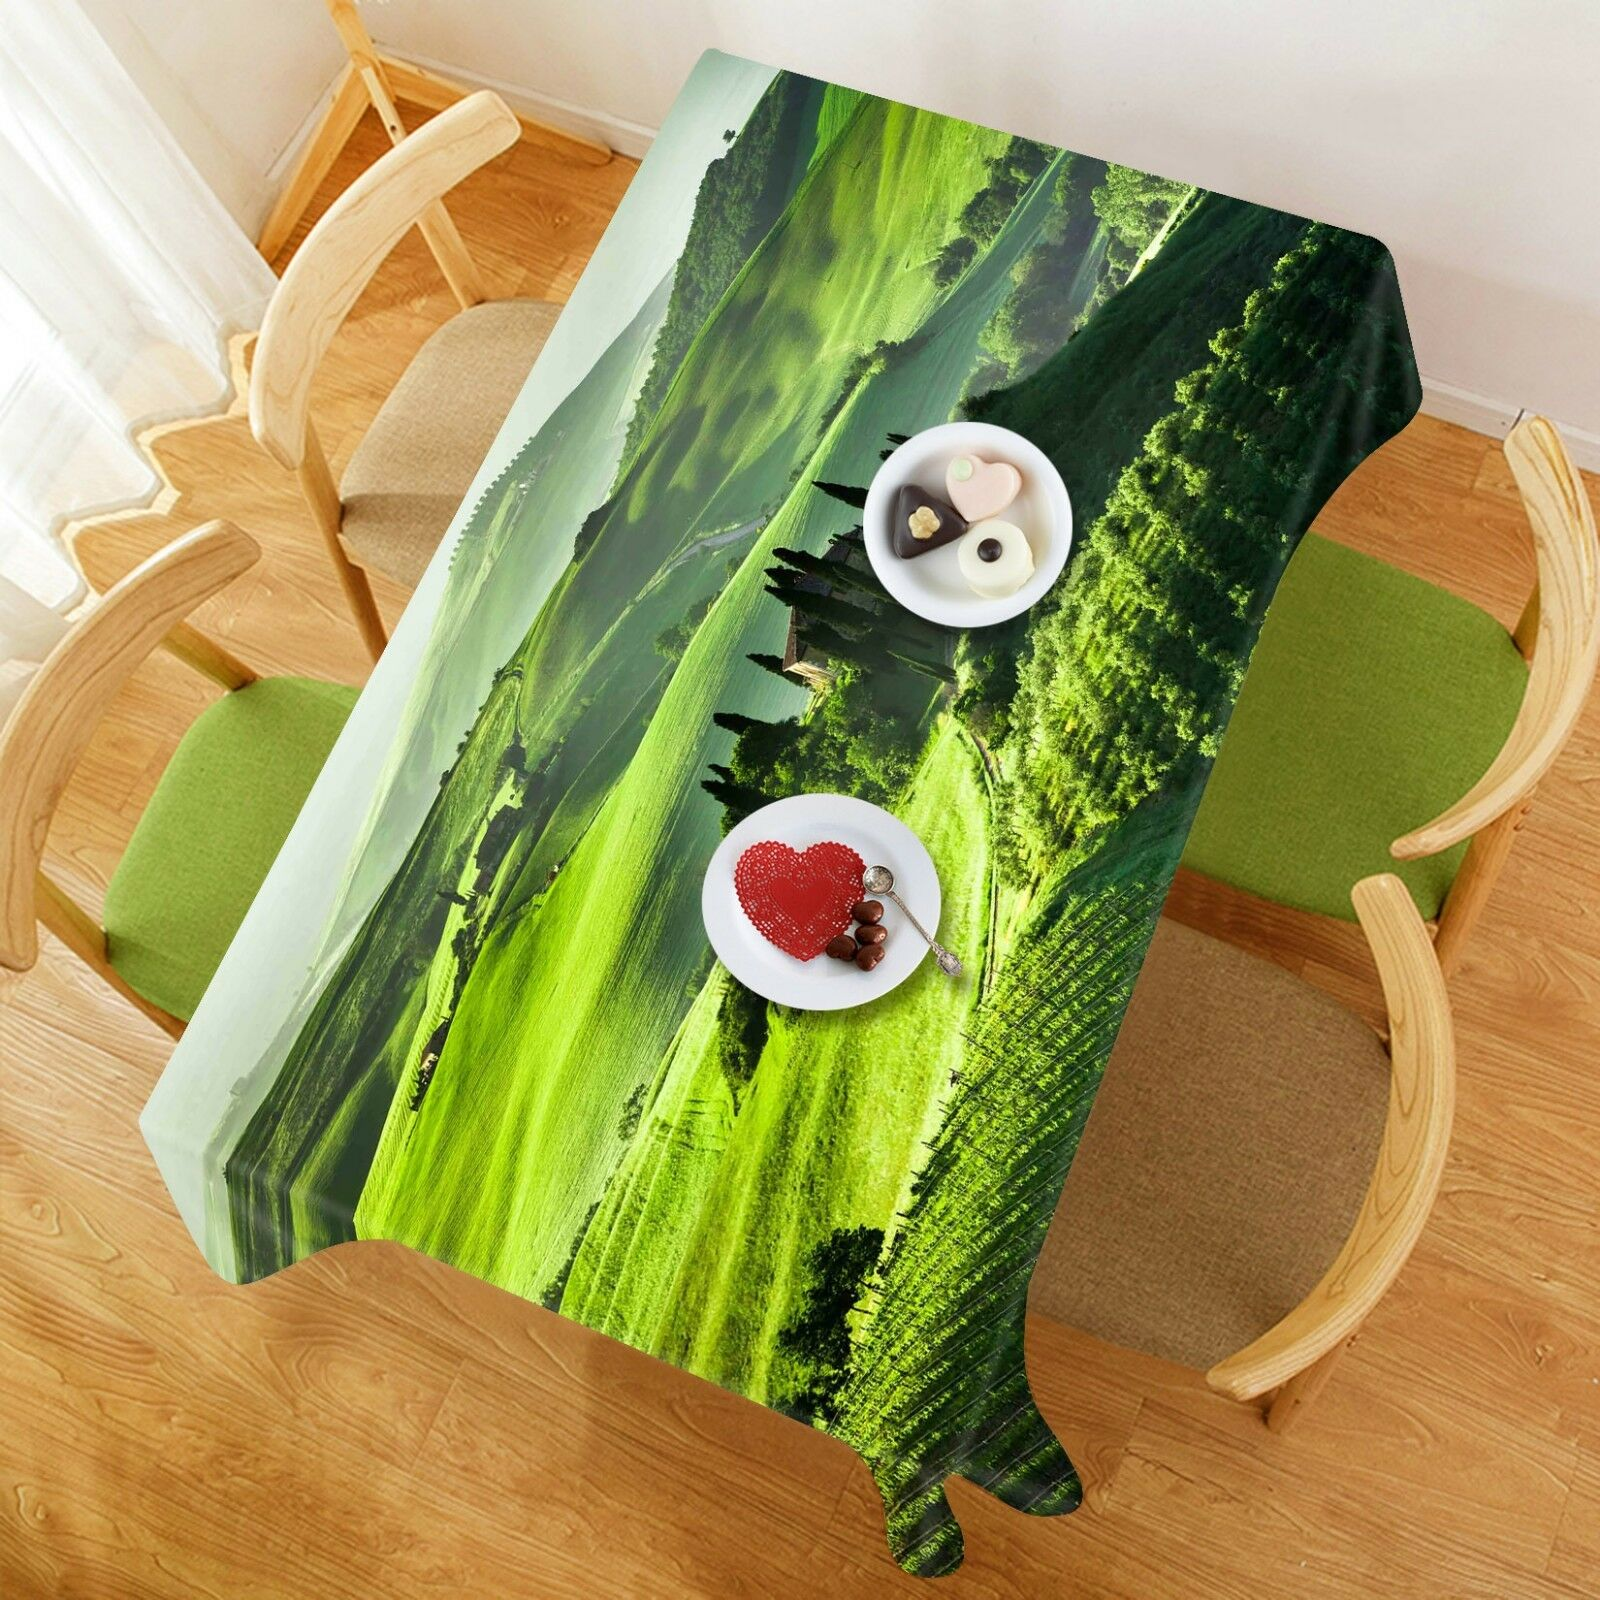 3D Lawn Mountain 05 Tablecloth Table Cover Cloth Birthday Party Event AJ Lemon